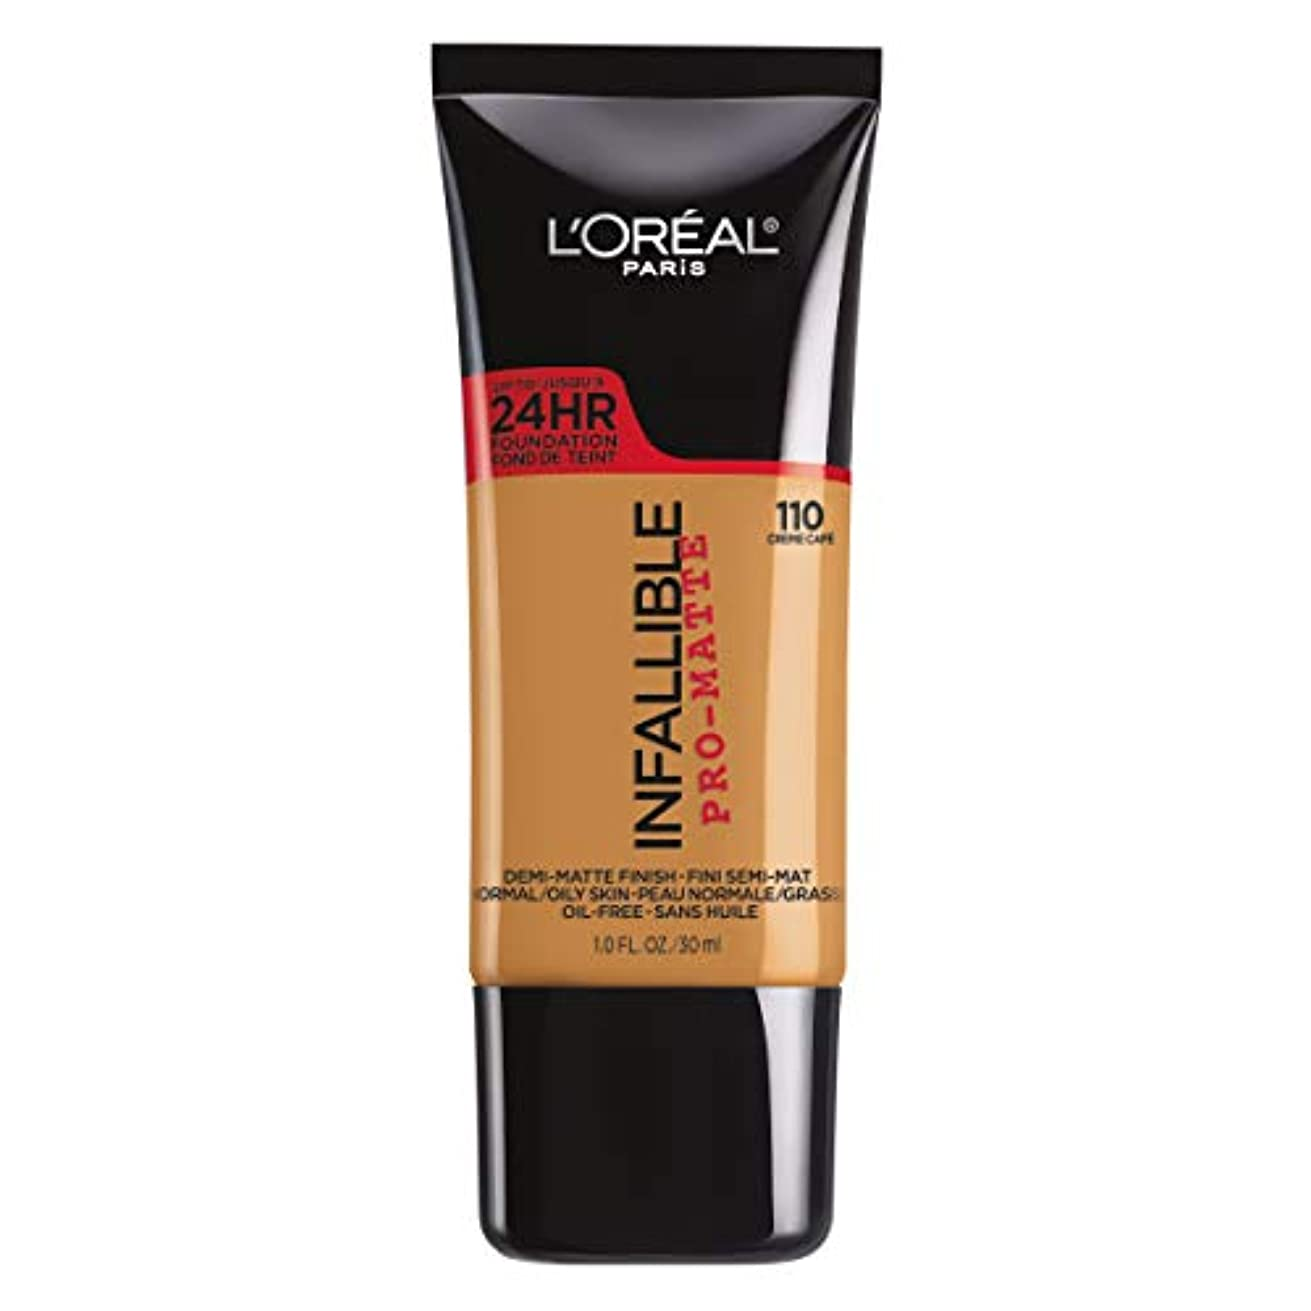 仲間面倒面積L'Oreal Paris Infallible Pro-Matte Foundation Makeup, 110 Crème Café, 1 fl. oz[並行輸入品]